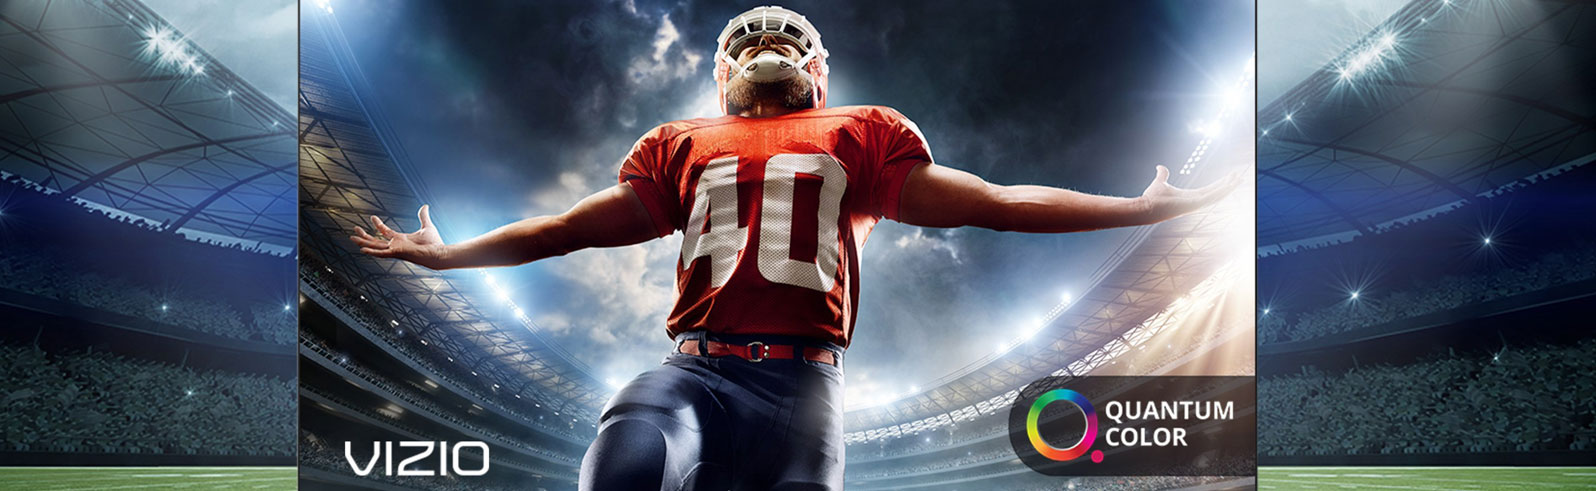 Vizio partners with FOX Deportes, becomes an official NFLeros sponsor for the Super Bowl in Spanish